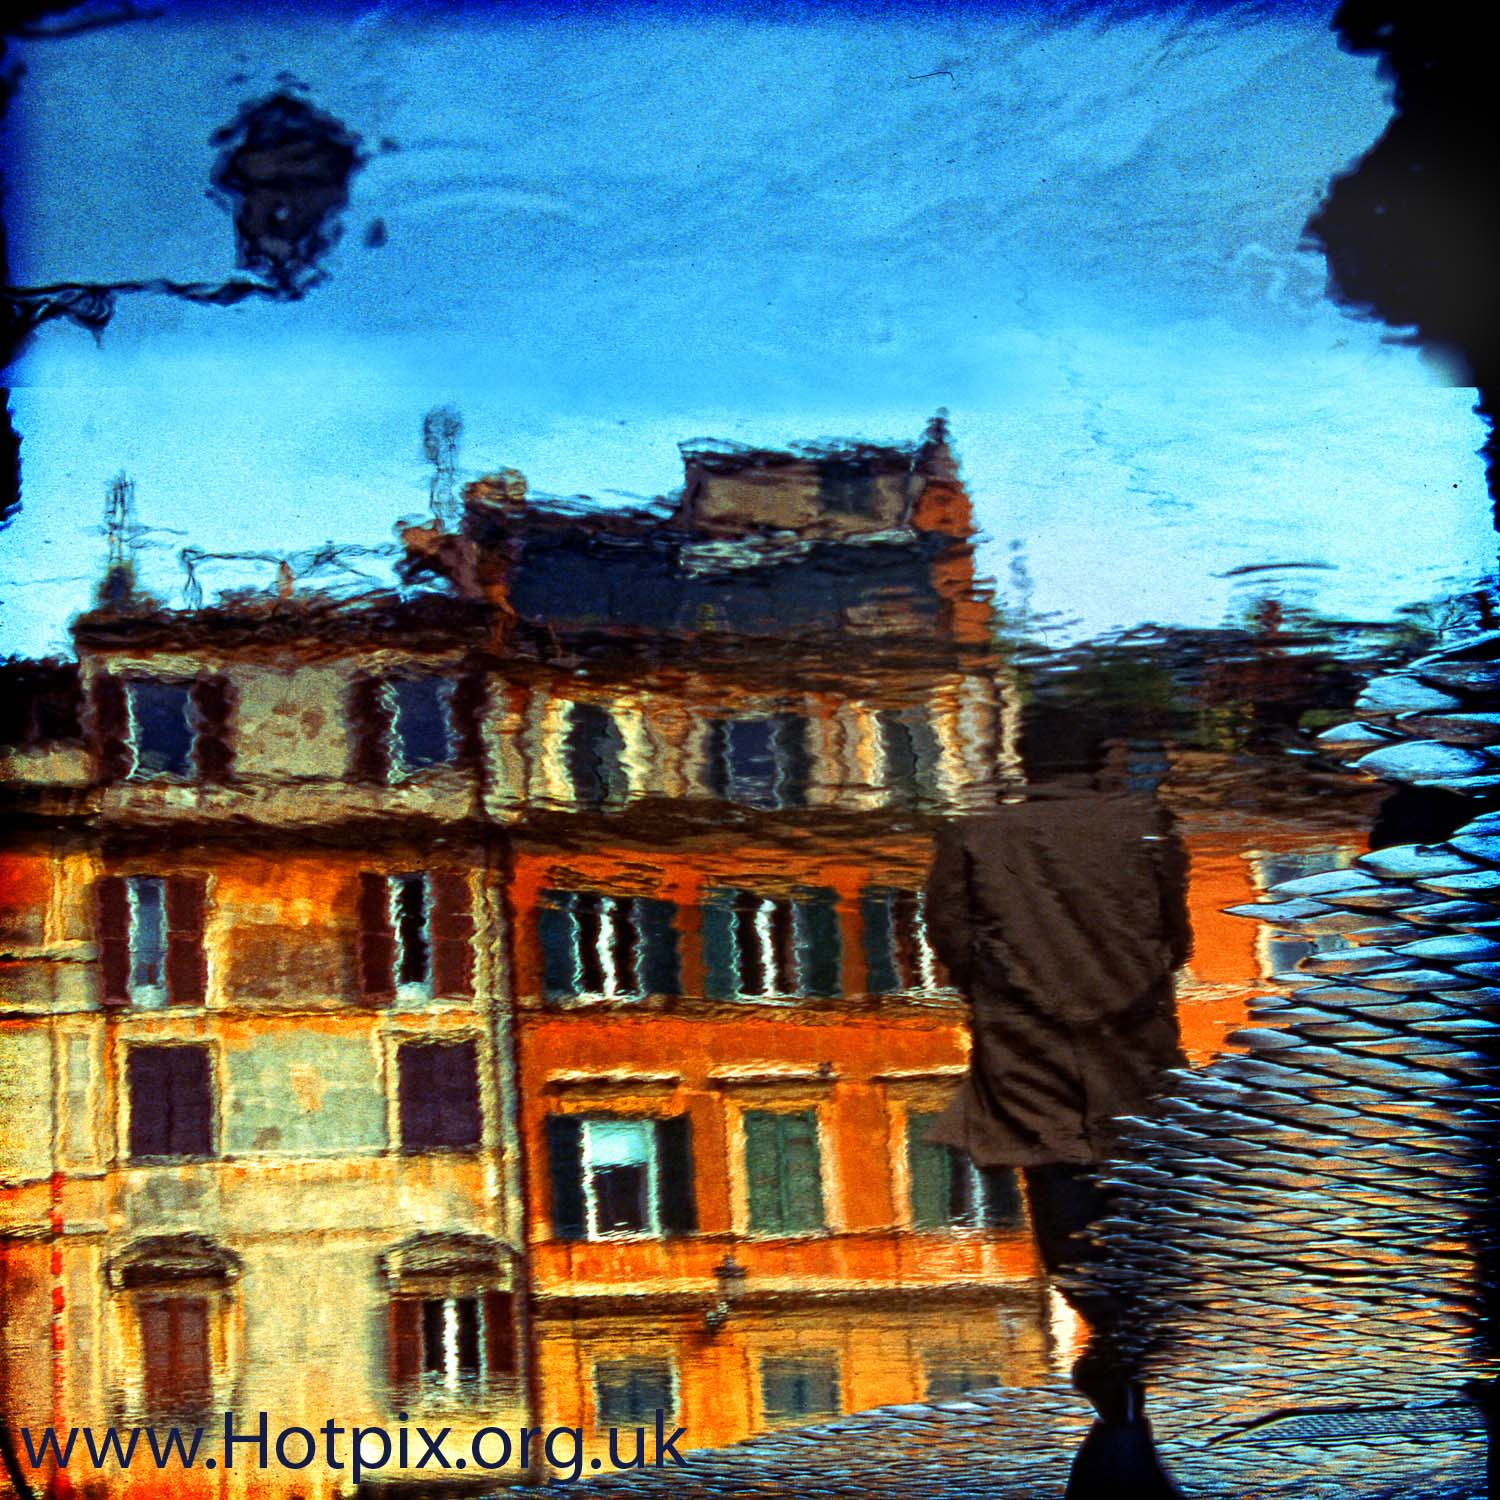 reflection,reflections,from,italy,italia,puddle,rain,wet,water,orange,buildings,building,square,piaza,man,person,male,walking,walker,Rome,Roma,Lazio,acutance,consulting,acutanceconsulting,acutanceconsulting.co.uk,www.acutanceconsulting